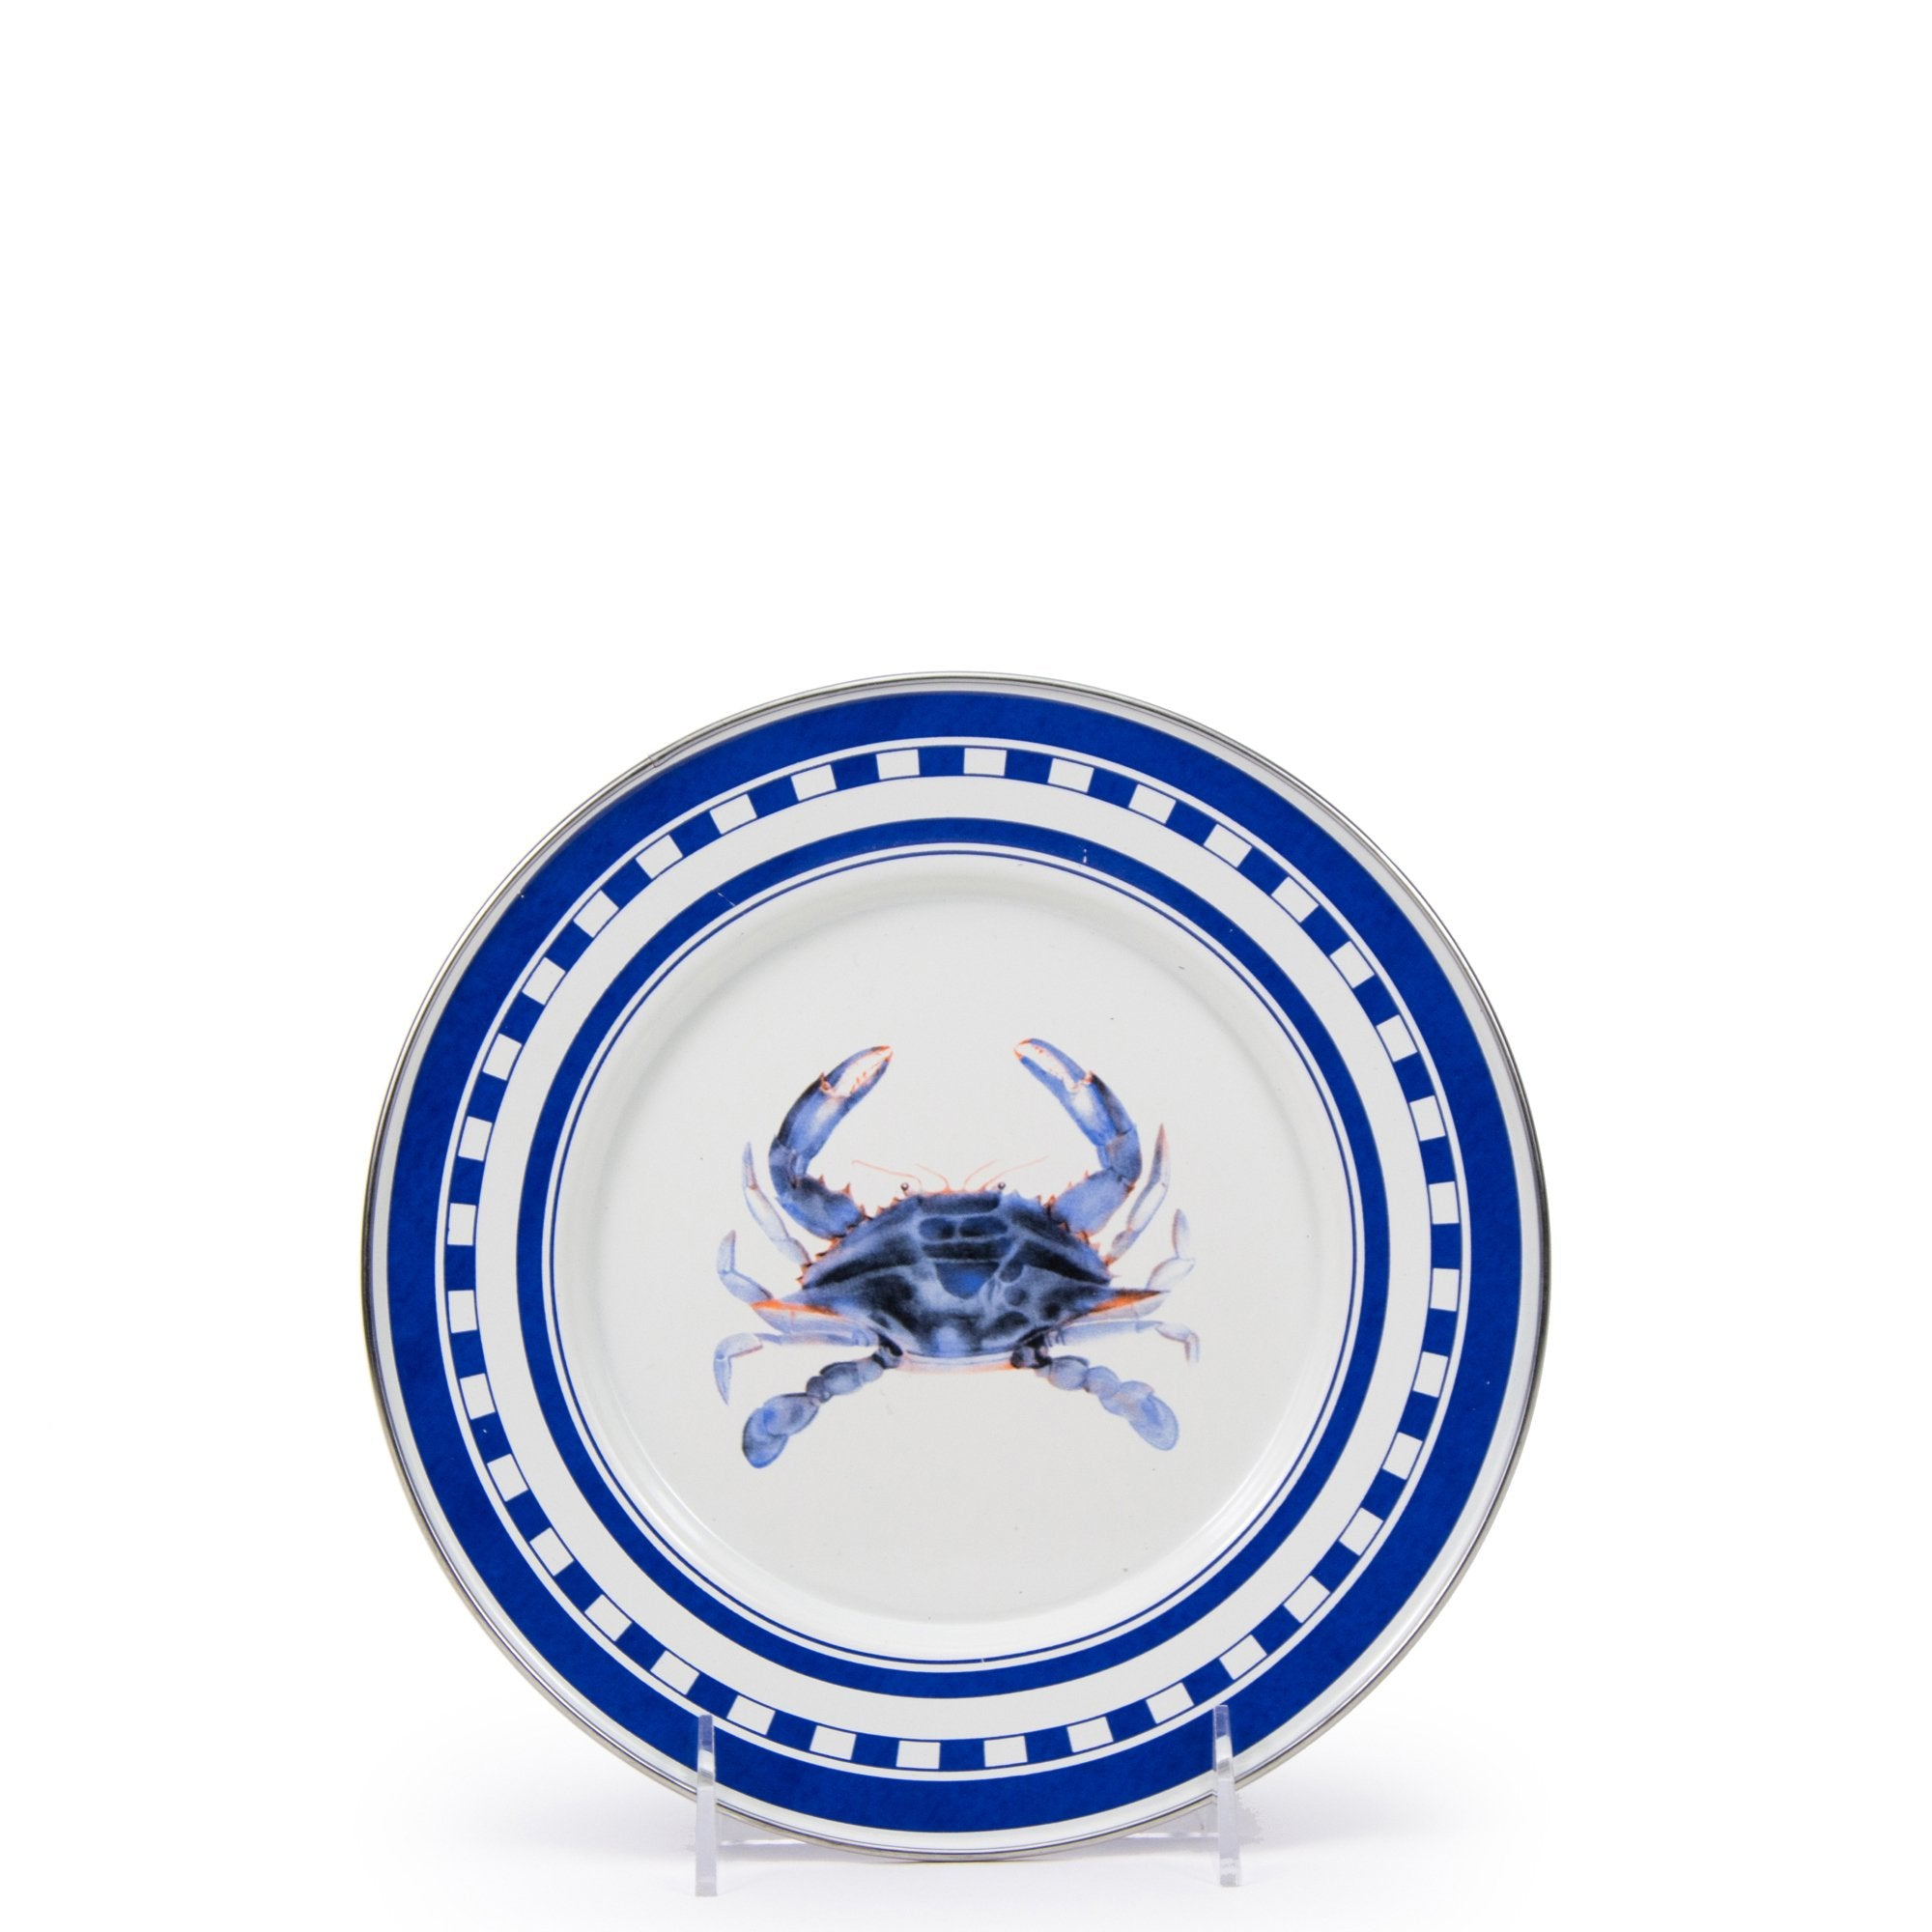 SE07S4 - Set of 4 Blue Crab Dinner Plates Image 2